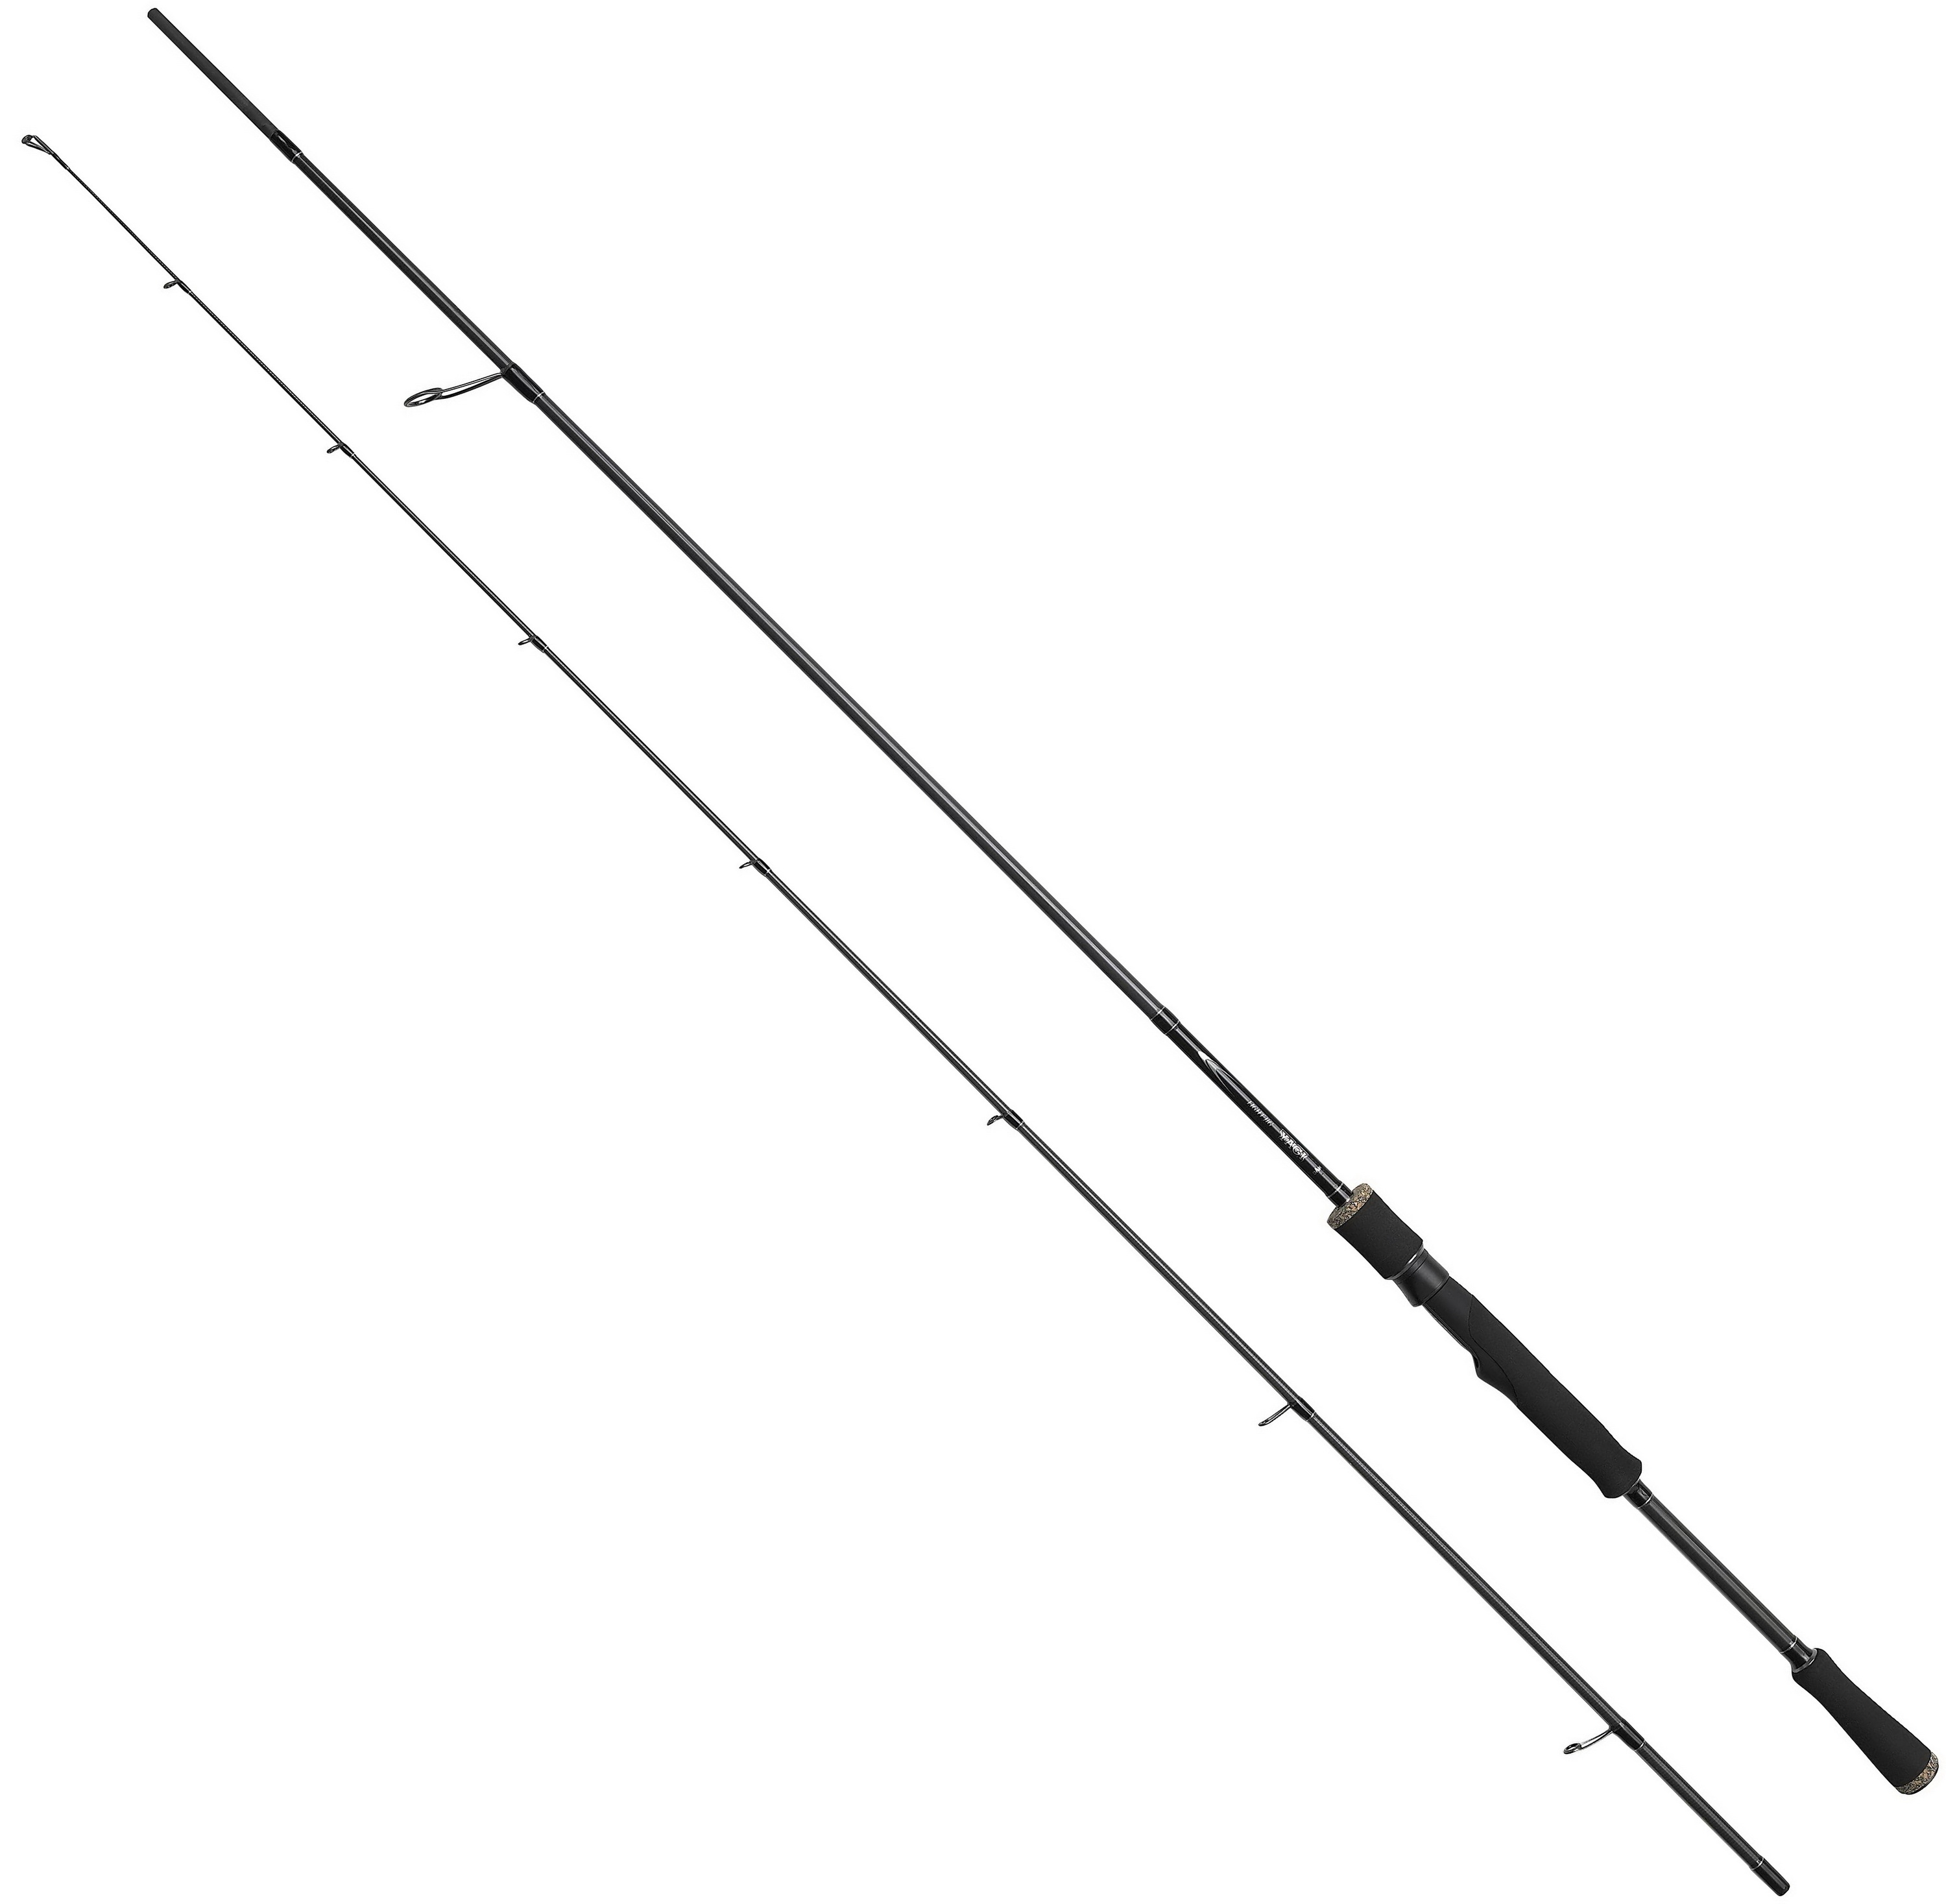 Спиннинг DAM Yagi Light Jig 2.40м 8-35гр.